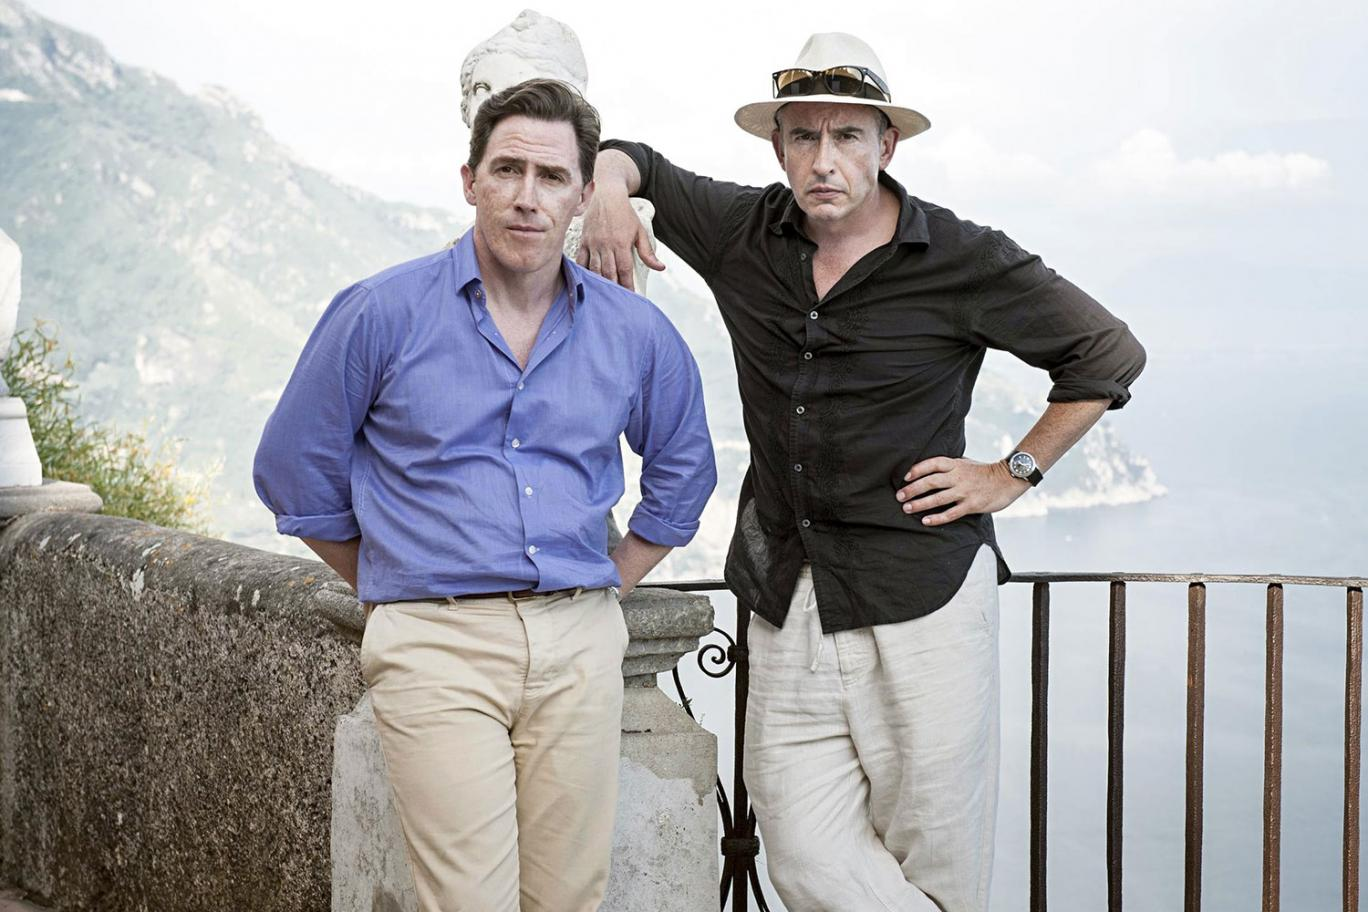 Steve Coogan and Rob Brydon are heading to Spain for a new series of The Trip